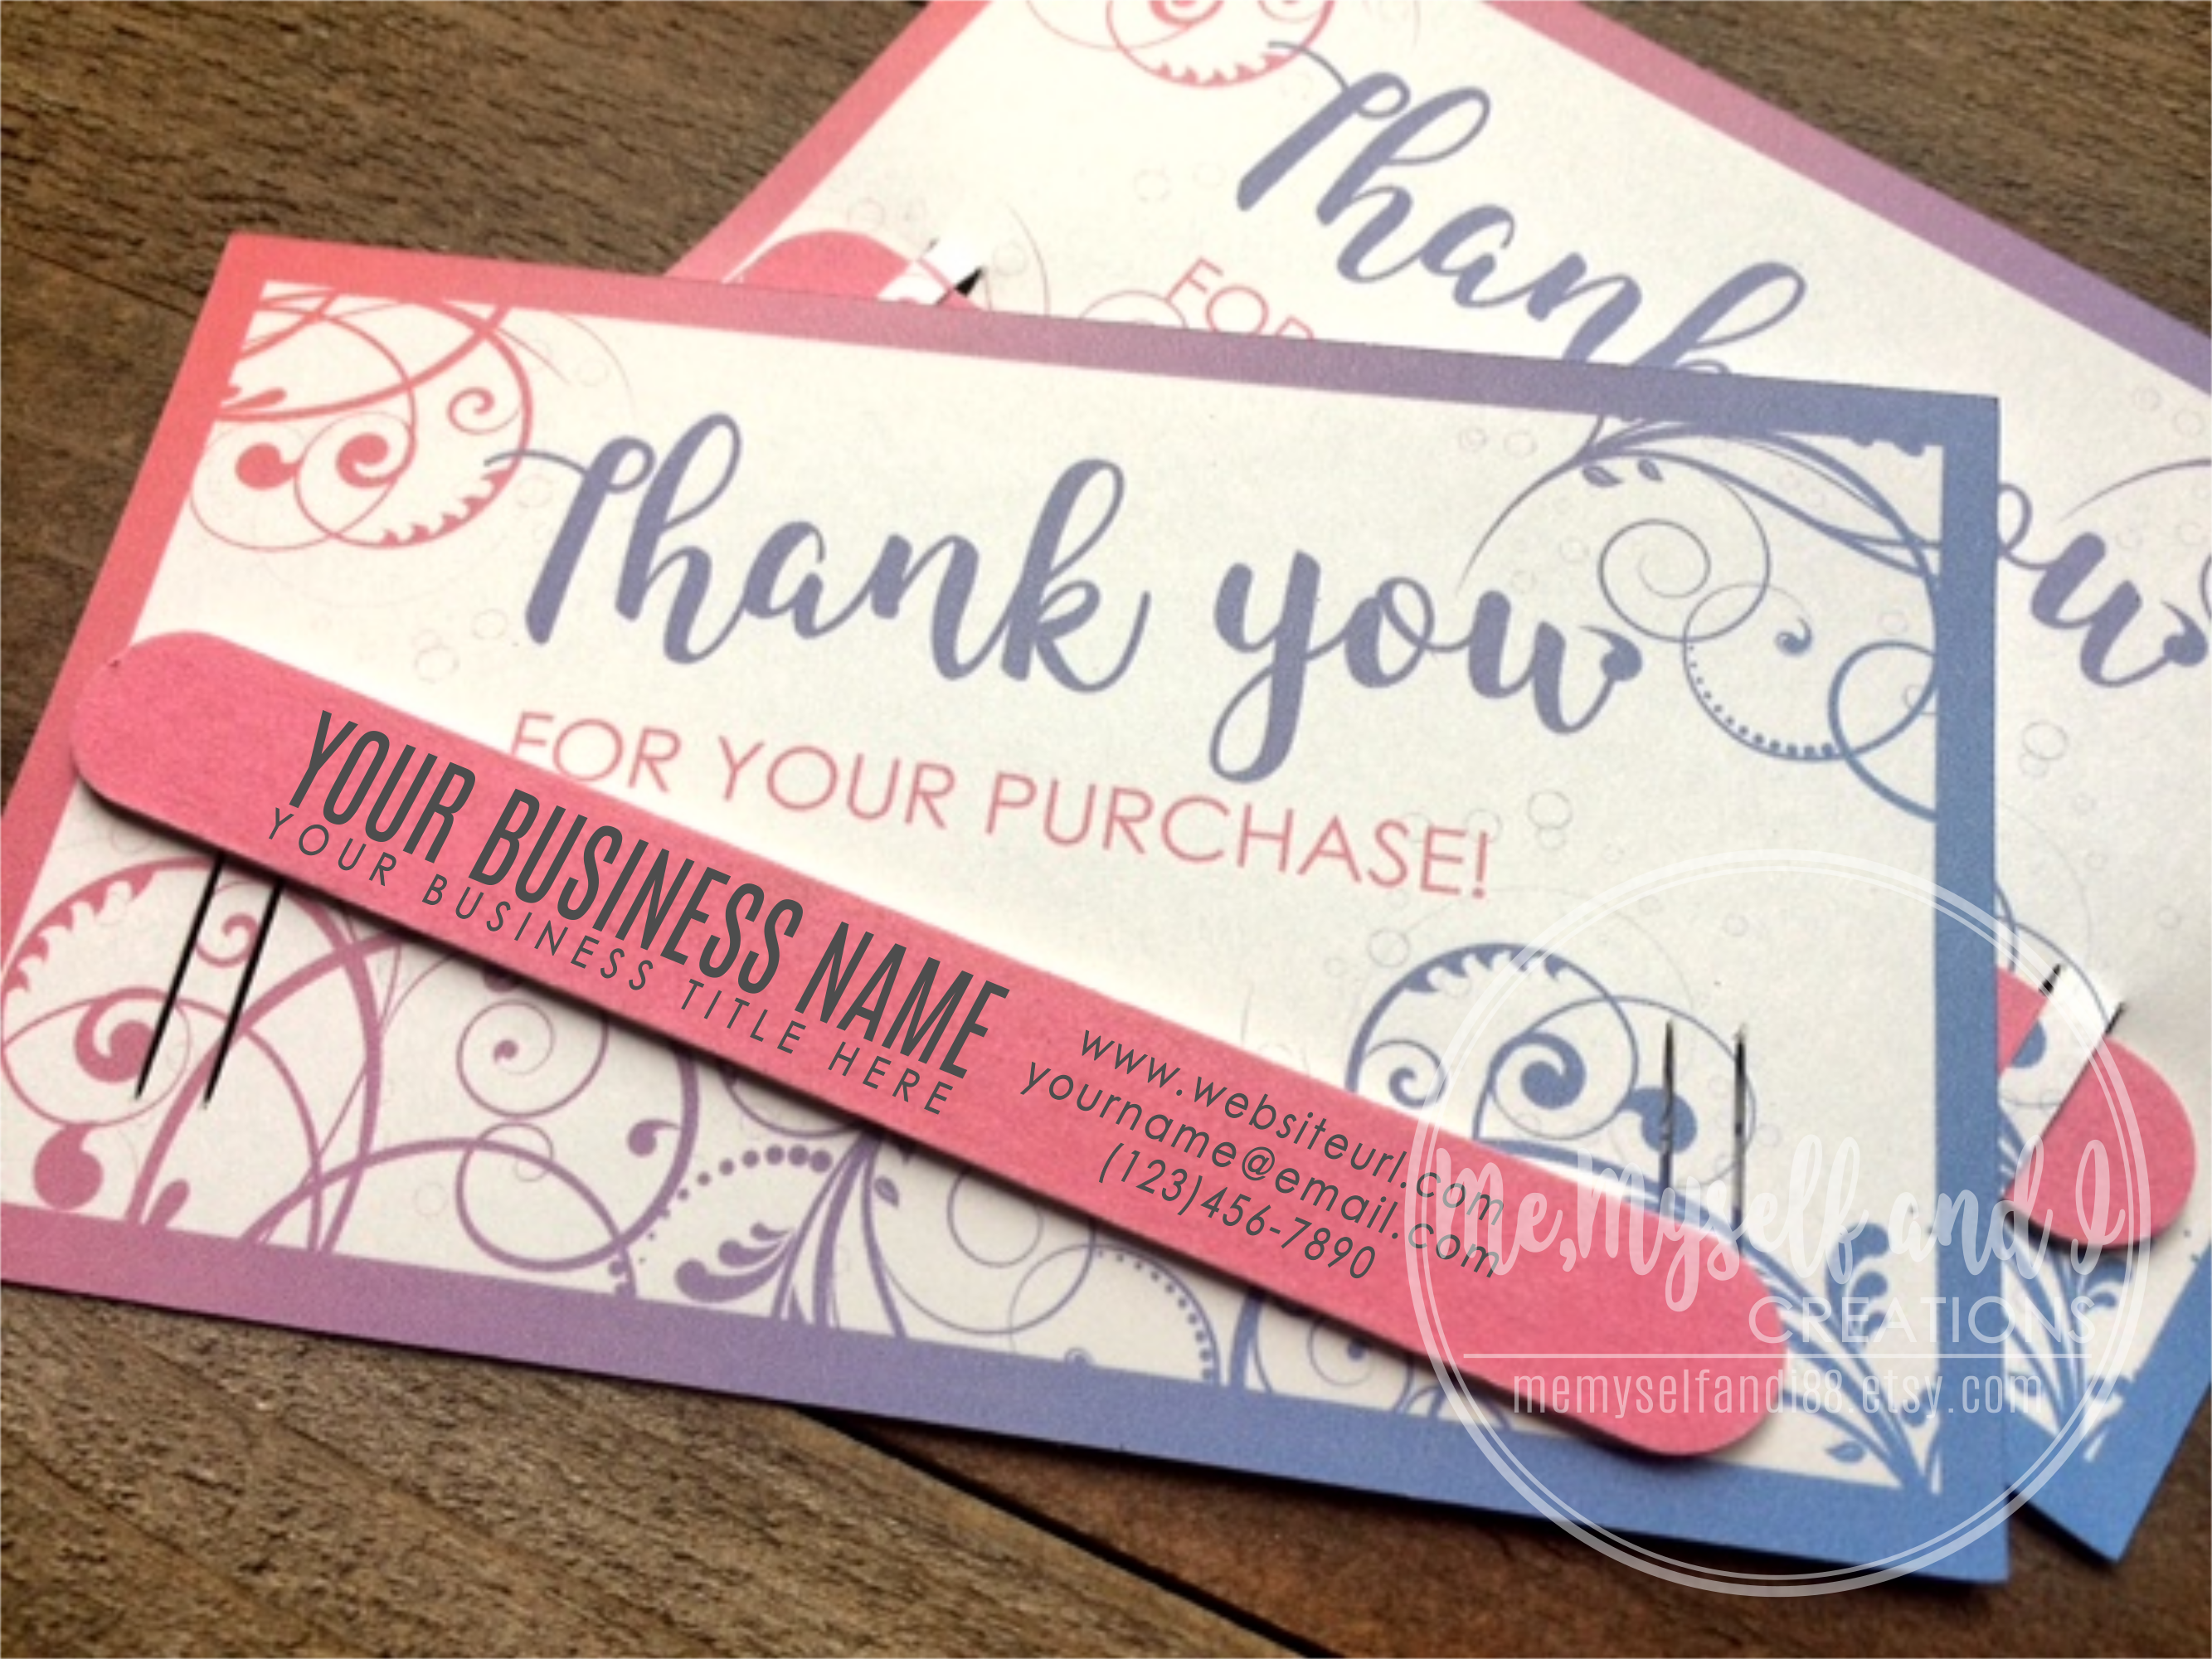 Independent fashion retailer thank you cards nail technician independent fashion retailer thank you cards nail technician business cards magicingreecefo Choice Image